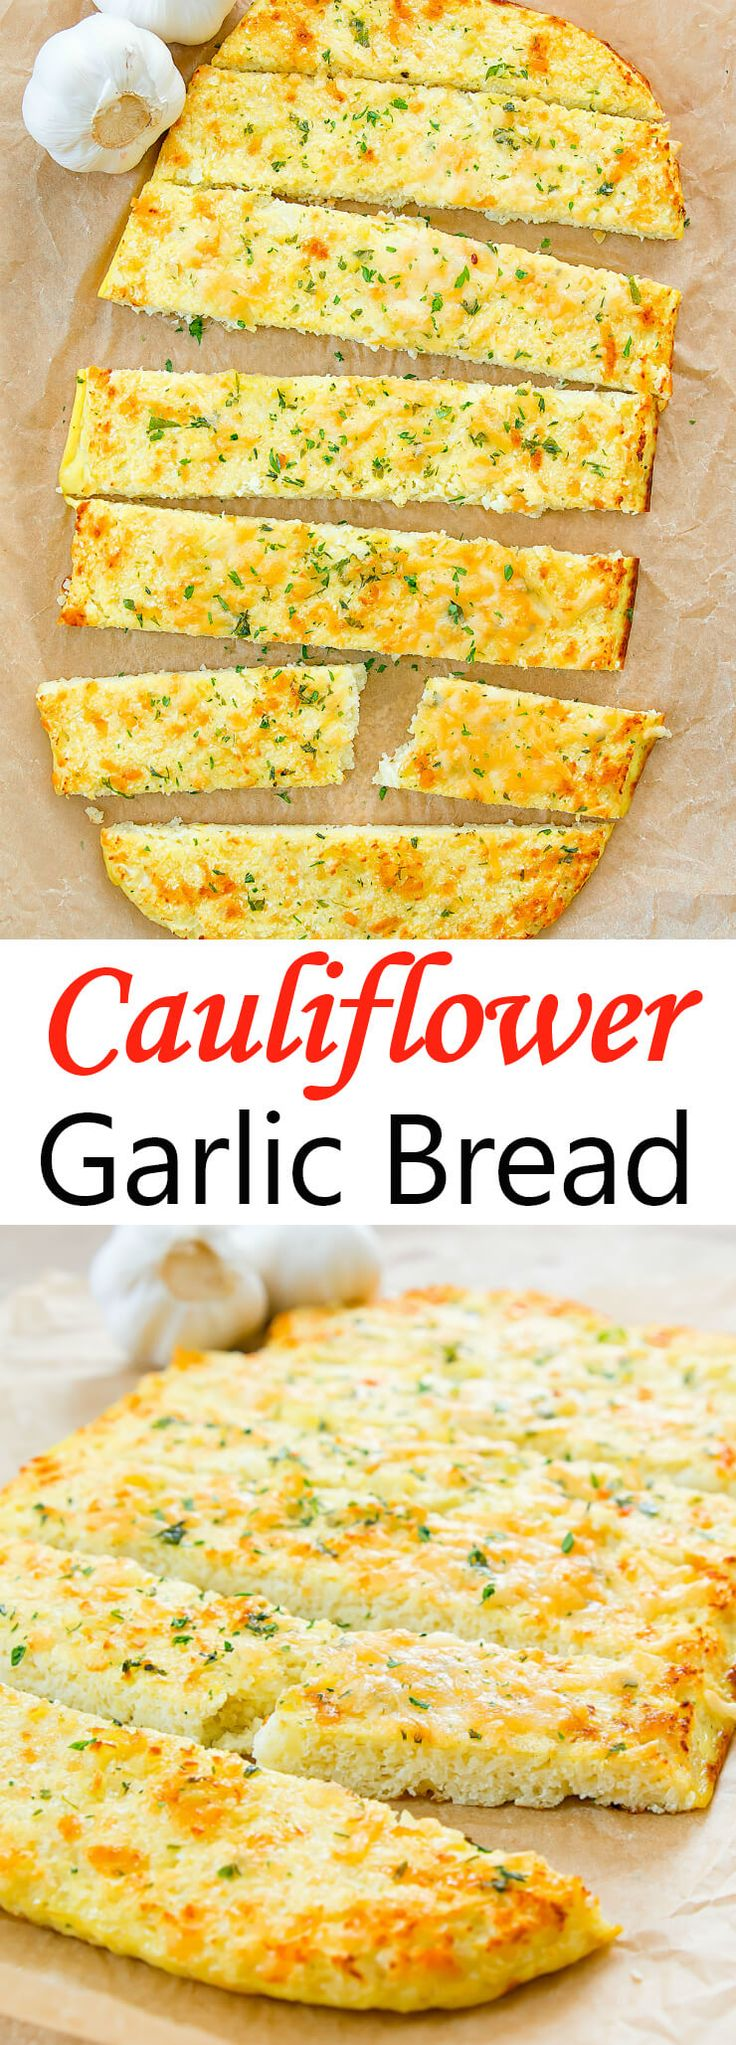 Cauliflower Garlic Bread. A low carb and healthier alternative to traditional garlic bread.